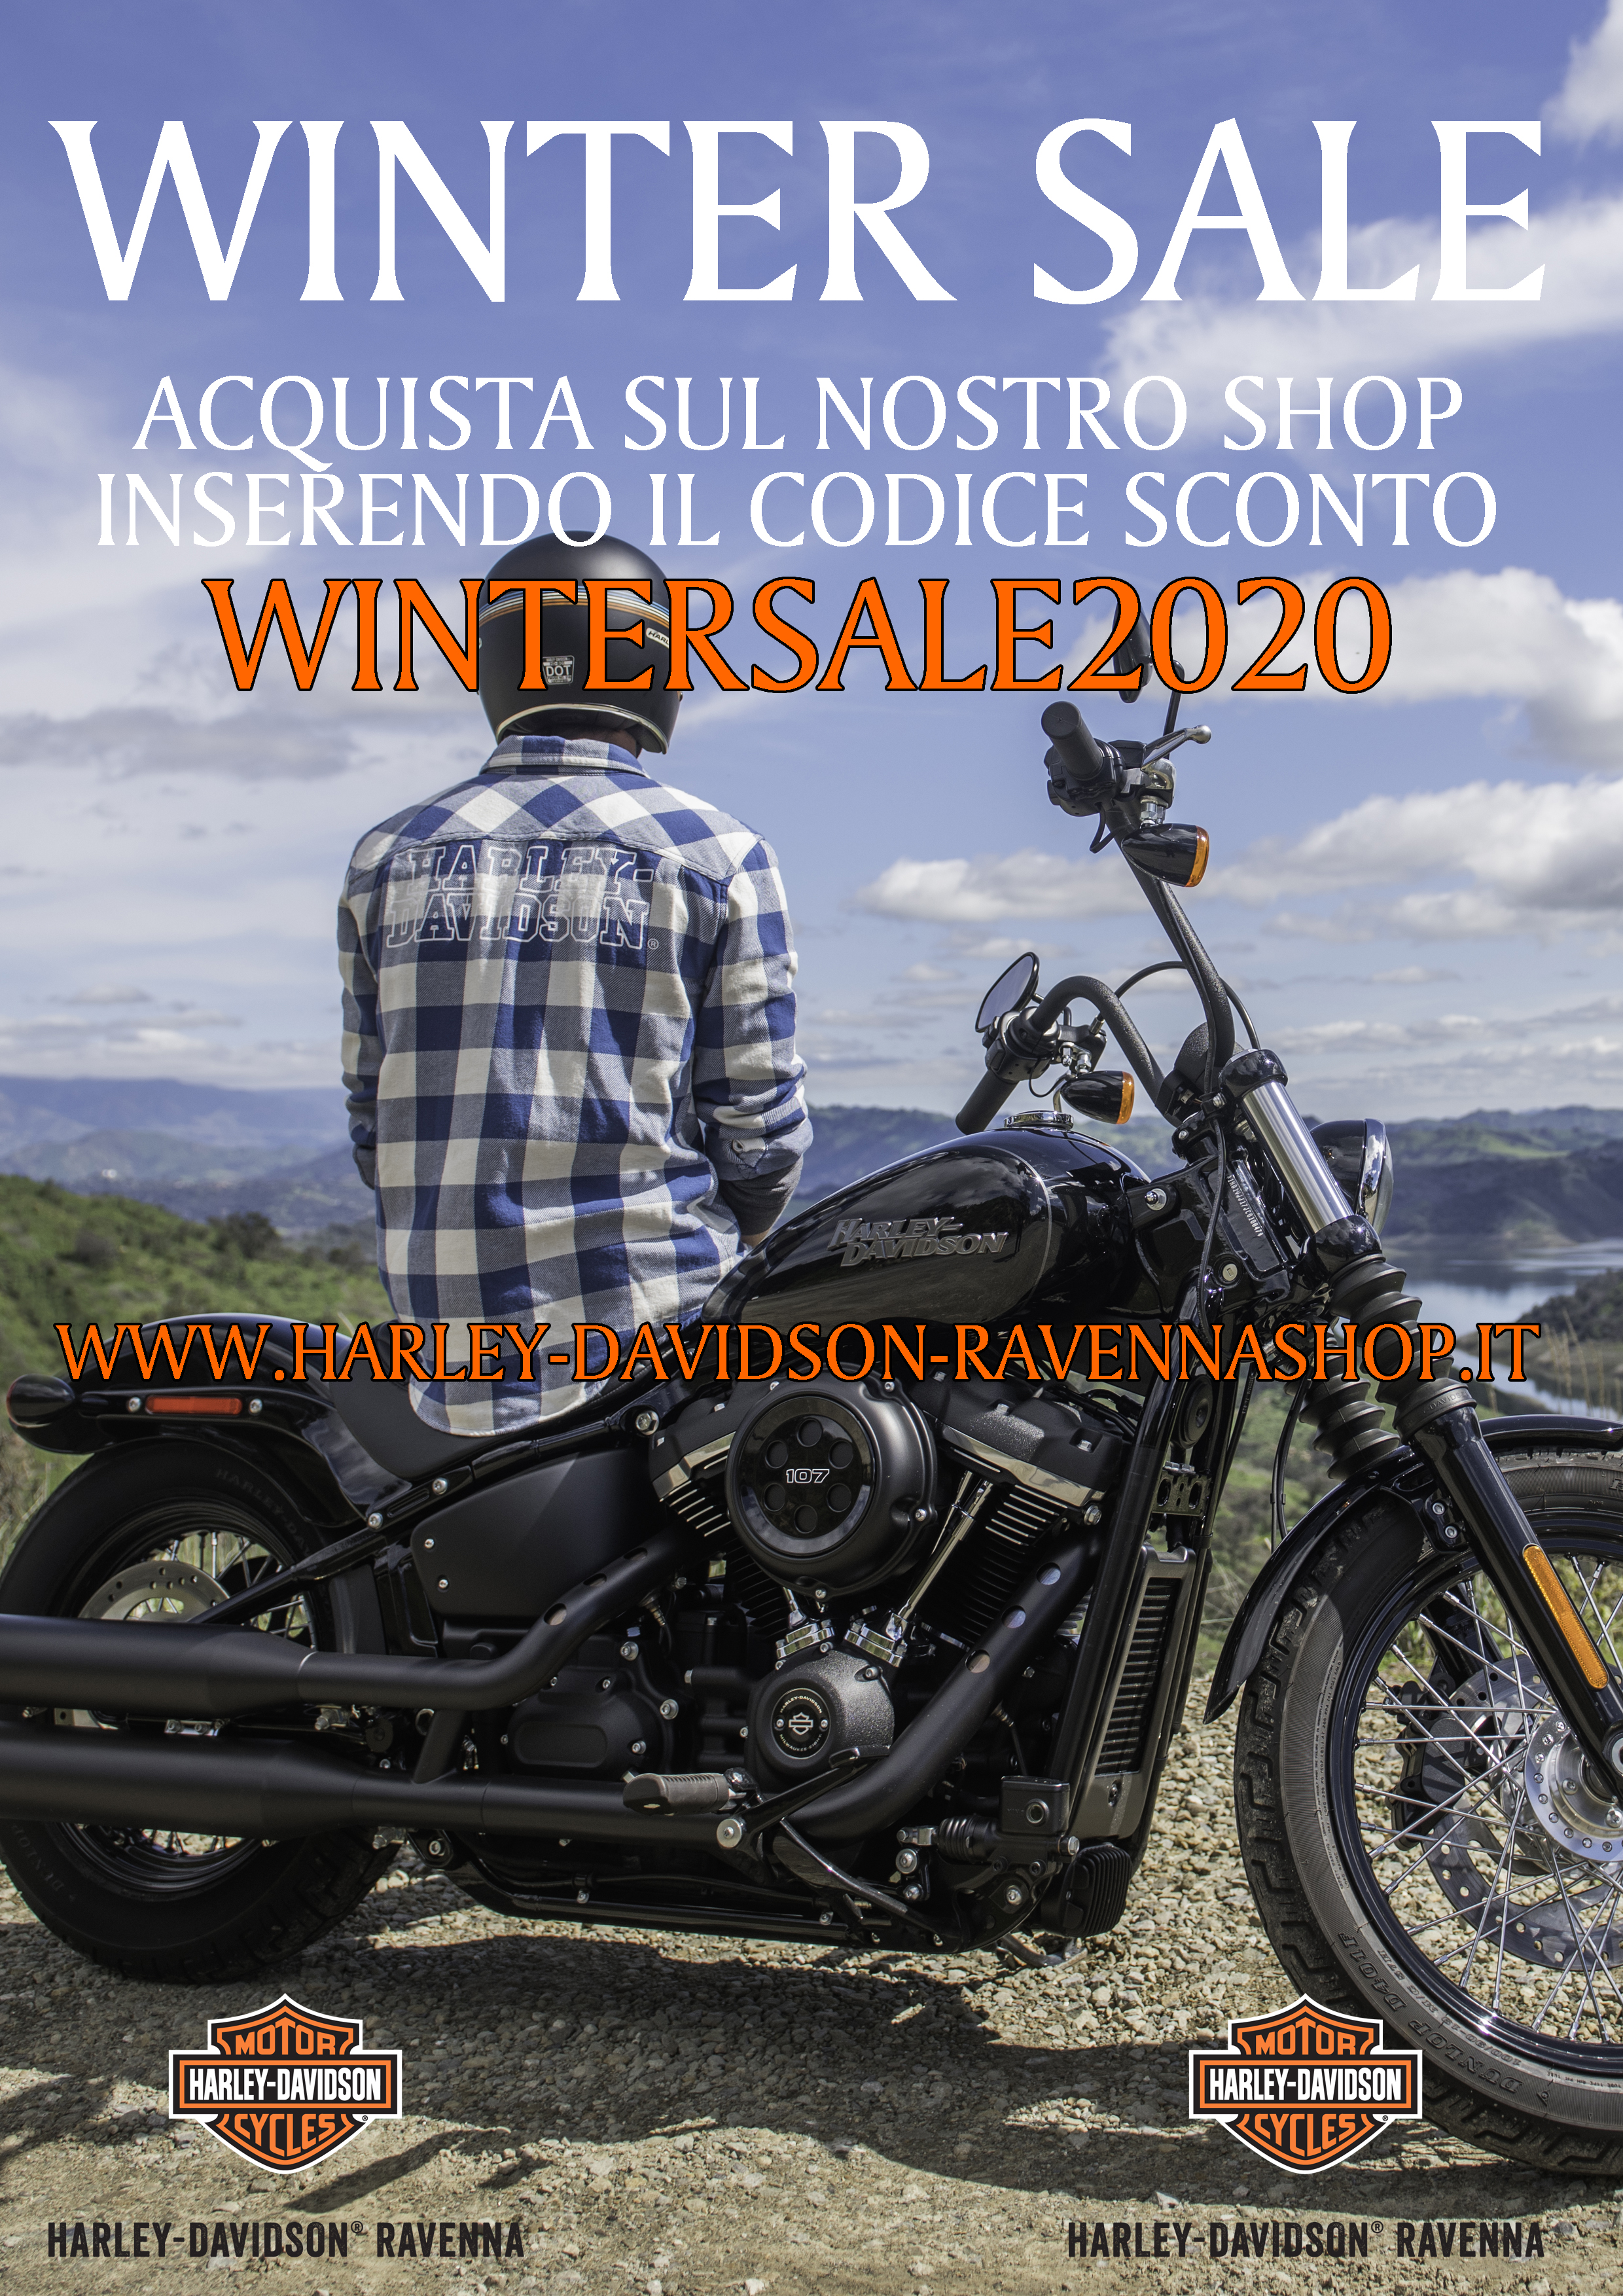 harley-davidson ravenna blog WINTER SALE YESSSSS